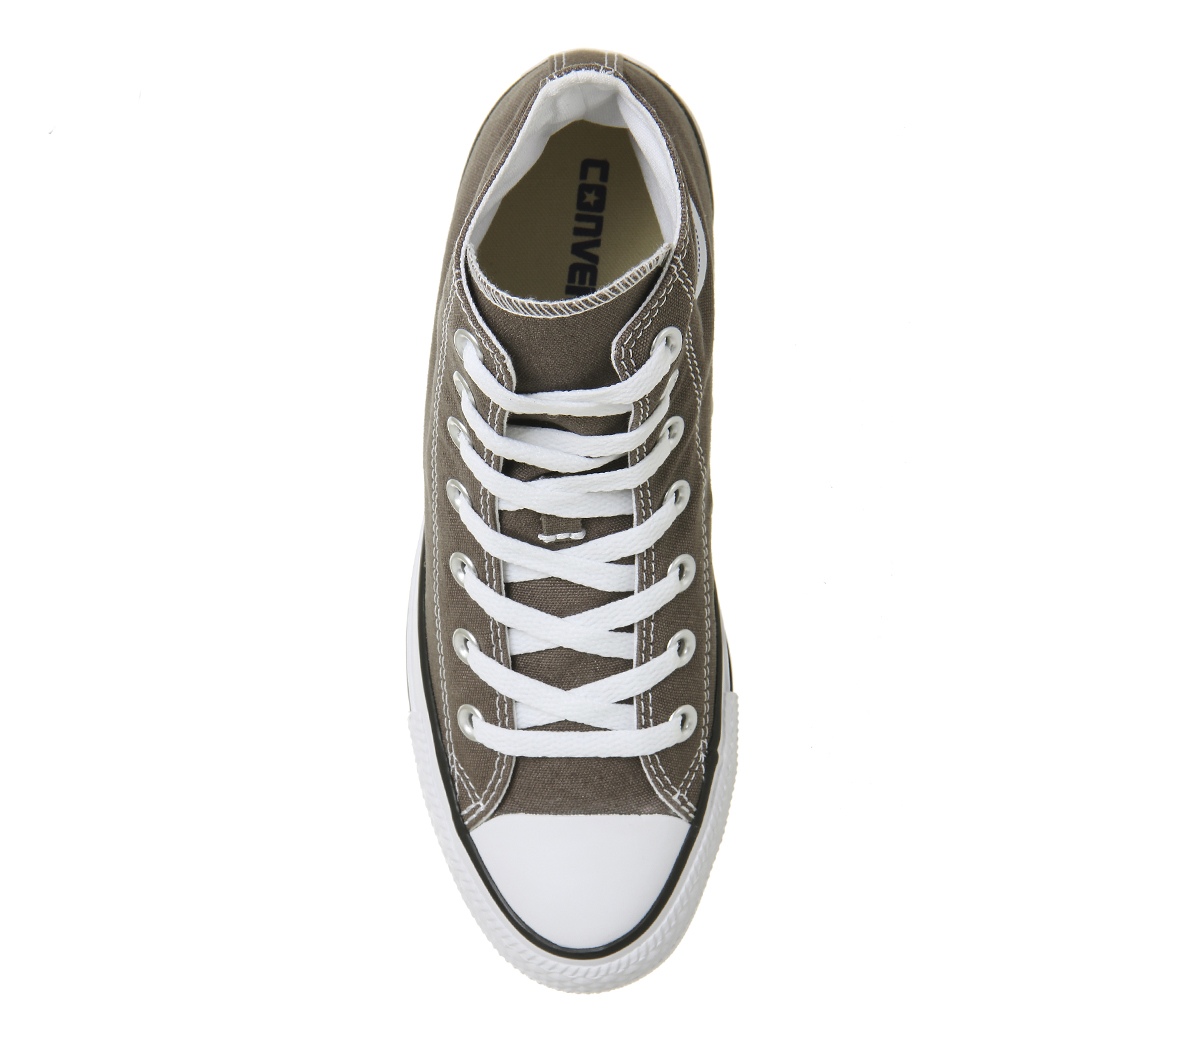 Damenschuhe Converse All Star Hi CHARCOAL Trainers Schuhes